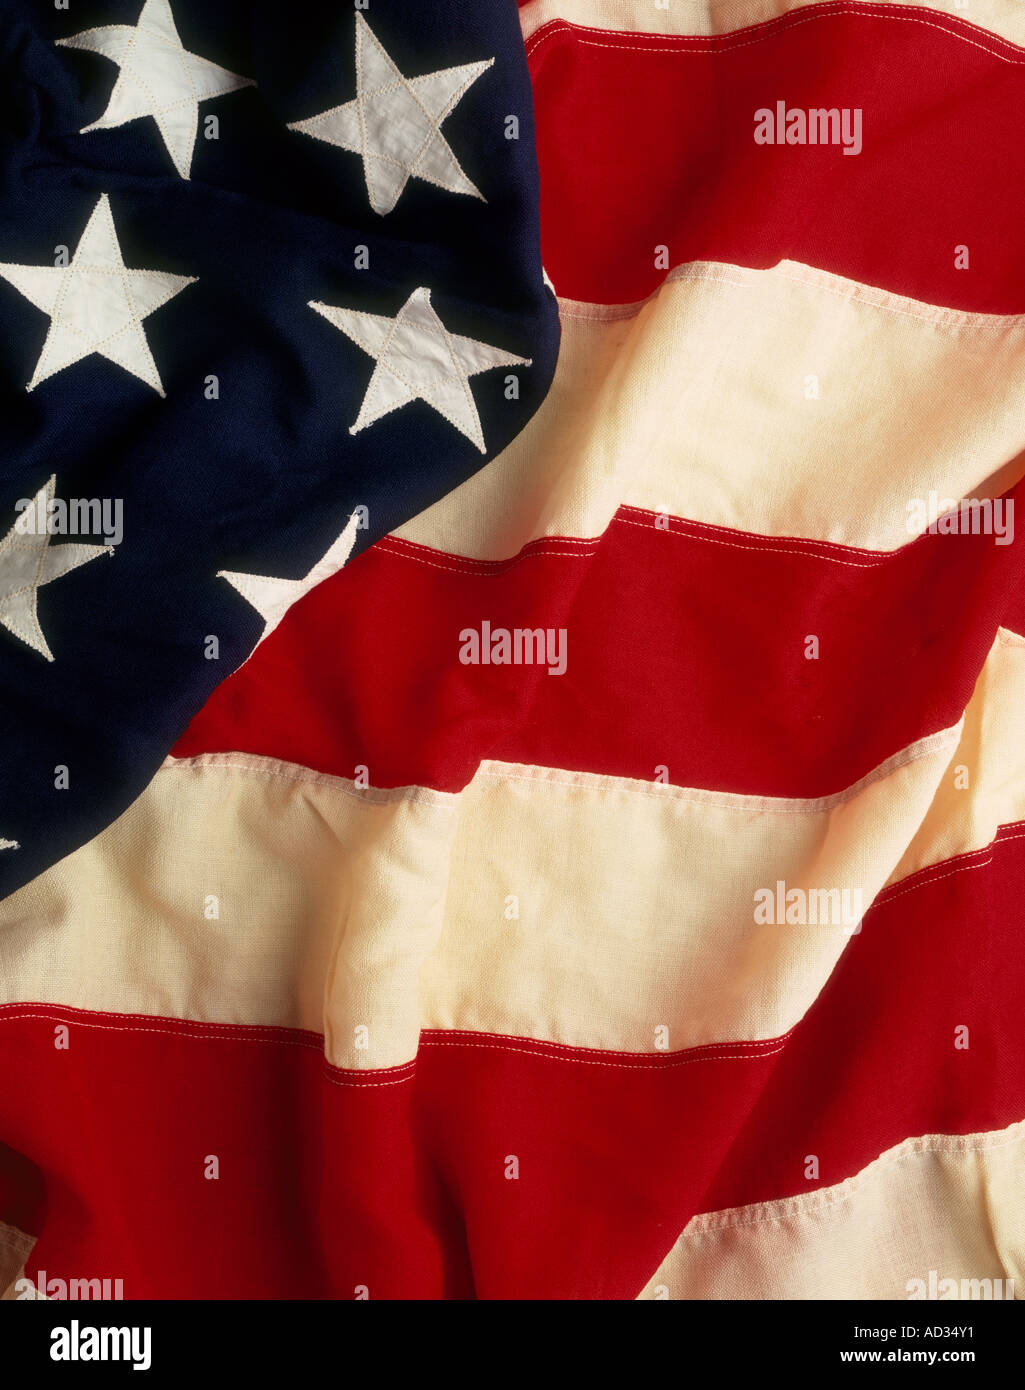 American flag. Stars and Stripes - Stock Image